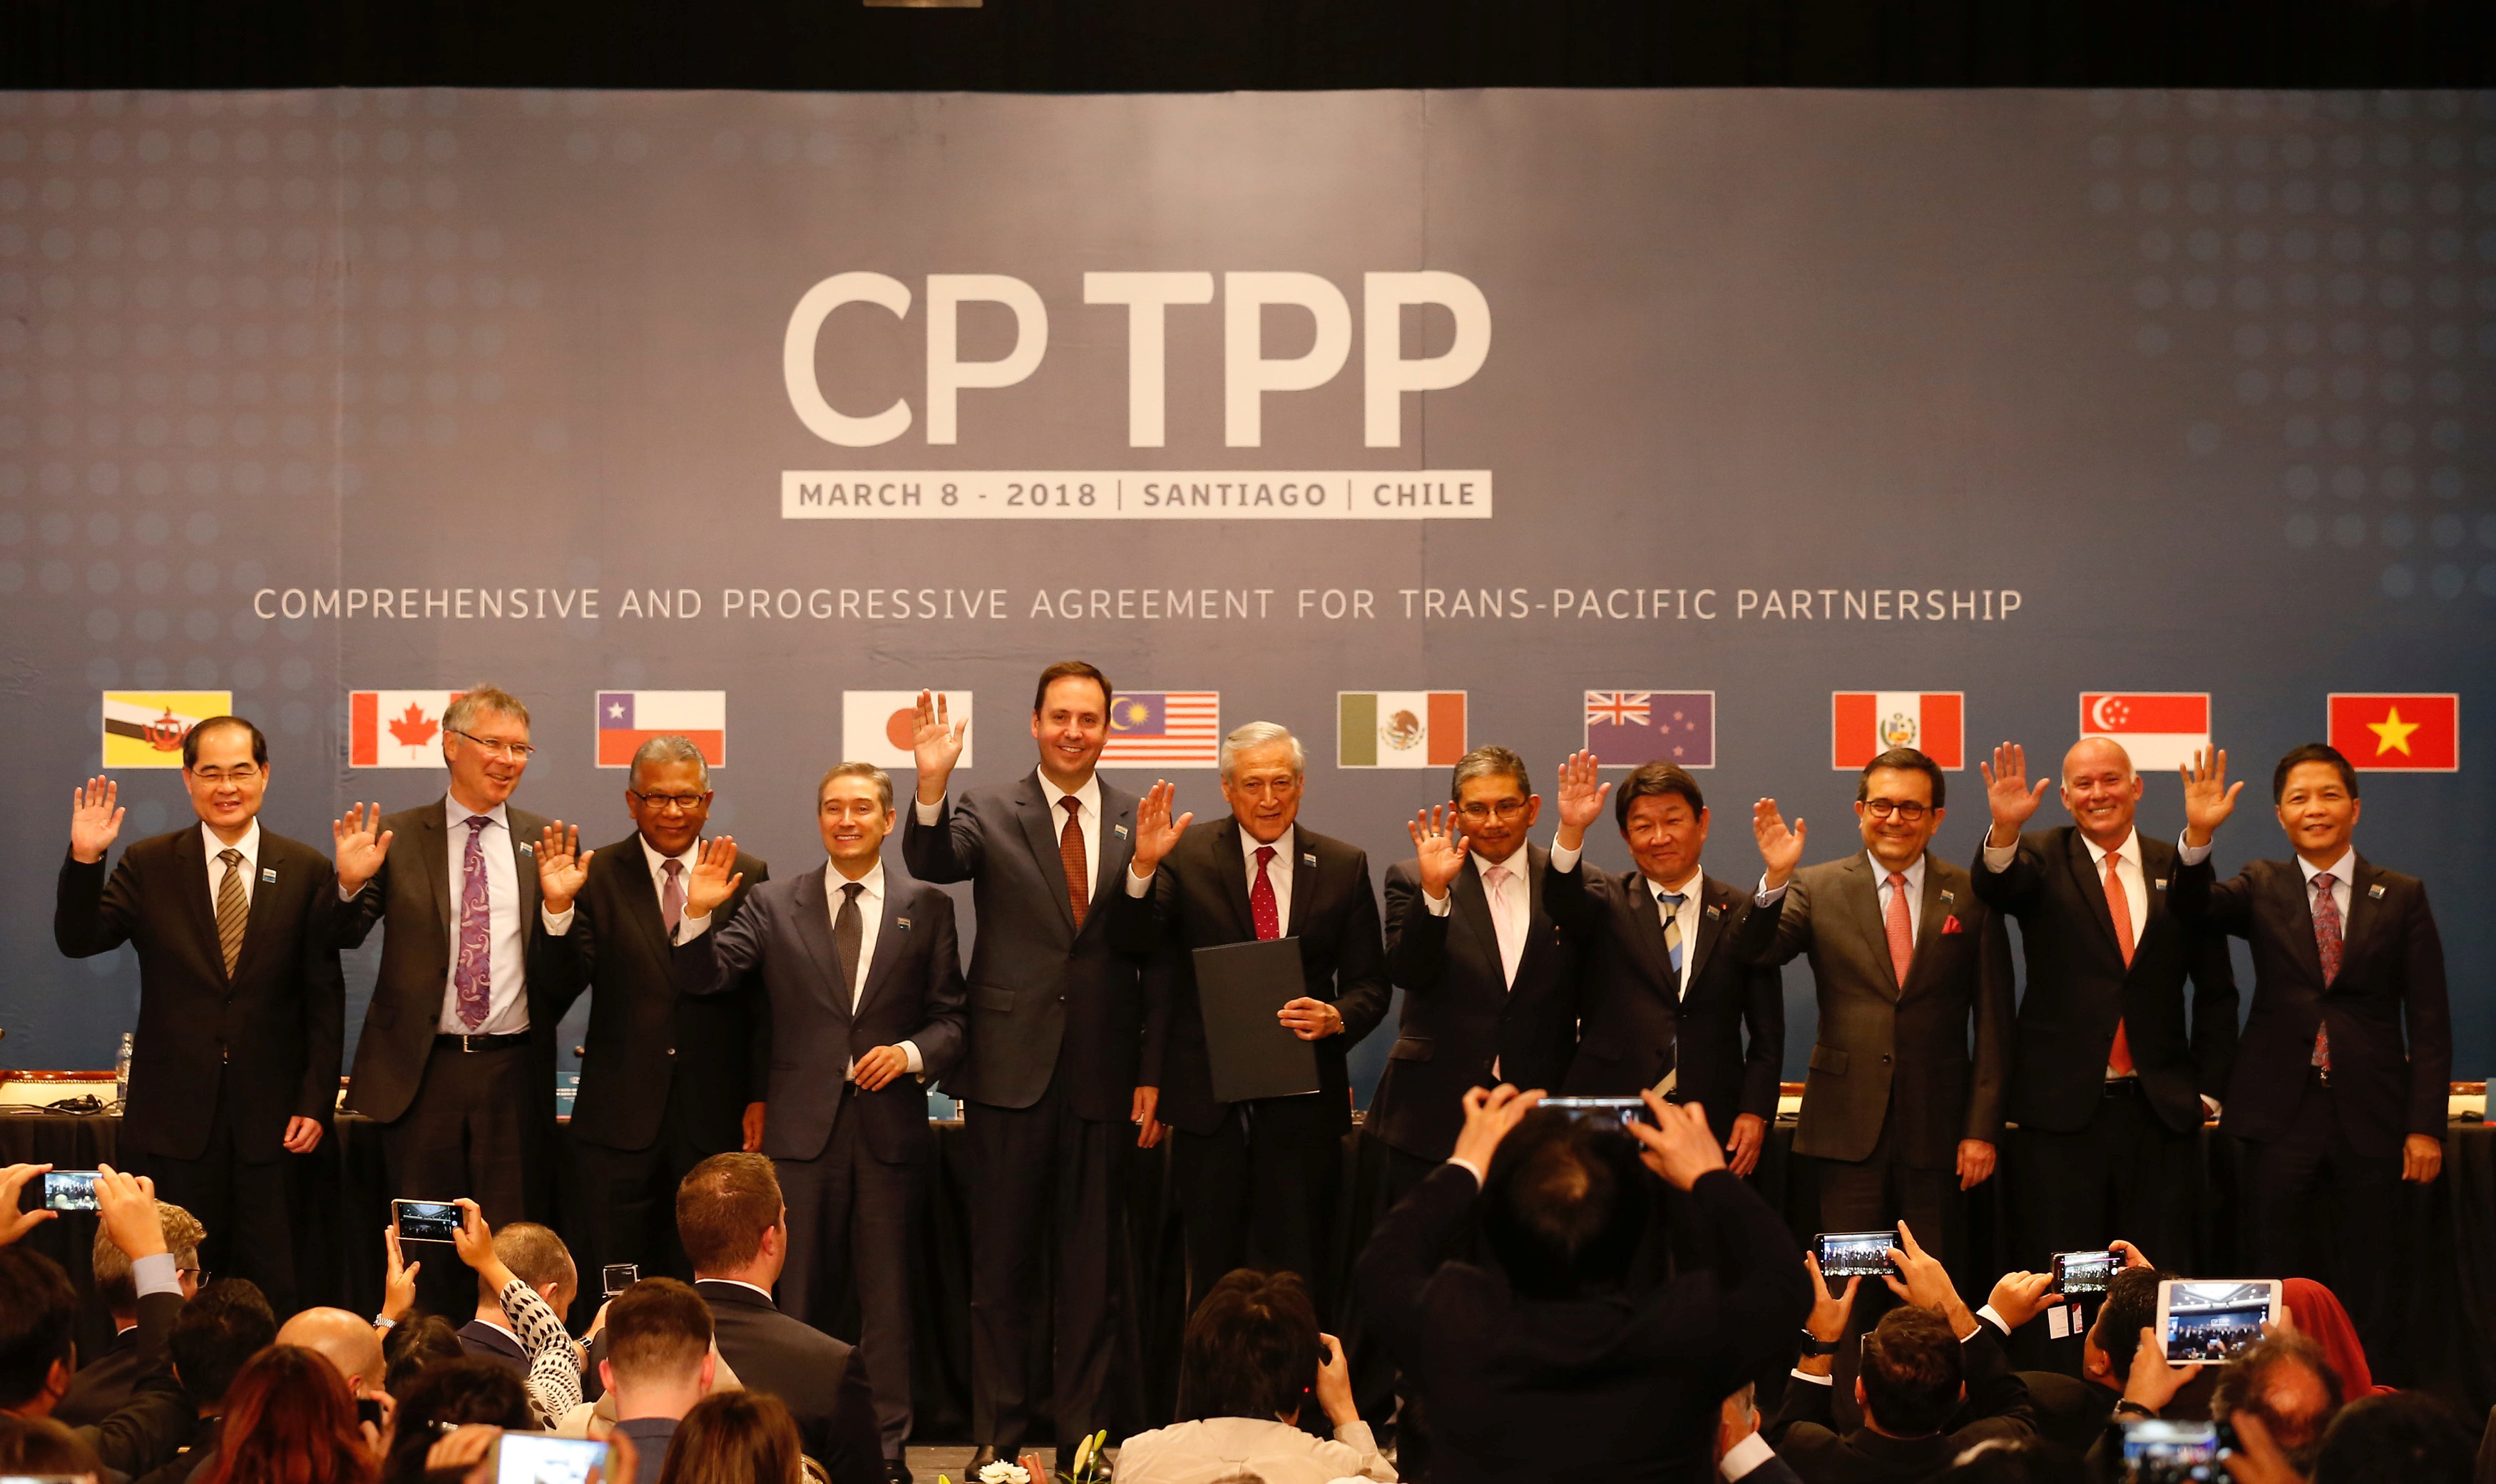 Representatives of members of Trans-Pacific Partnership (TPP) trade deal: Brunei's Acting Minister for Foreign Affairs Erywan Dato Pehin, Chile's Foreign Minister Heraldo Munoz, Australia's Trade Minister Steven Ciobo, Canada's International Trade Mi...